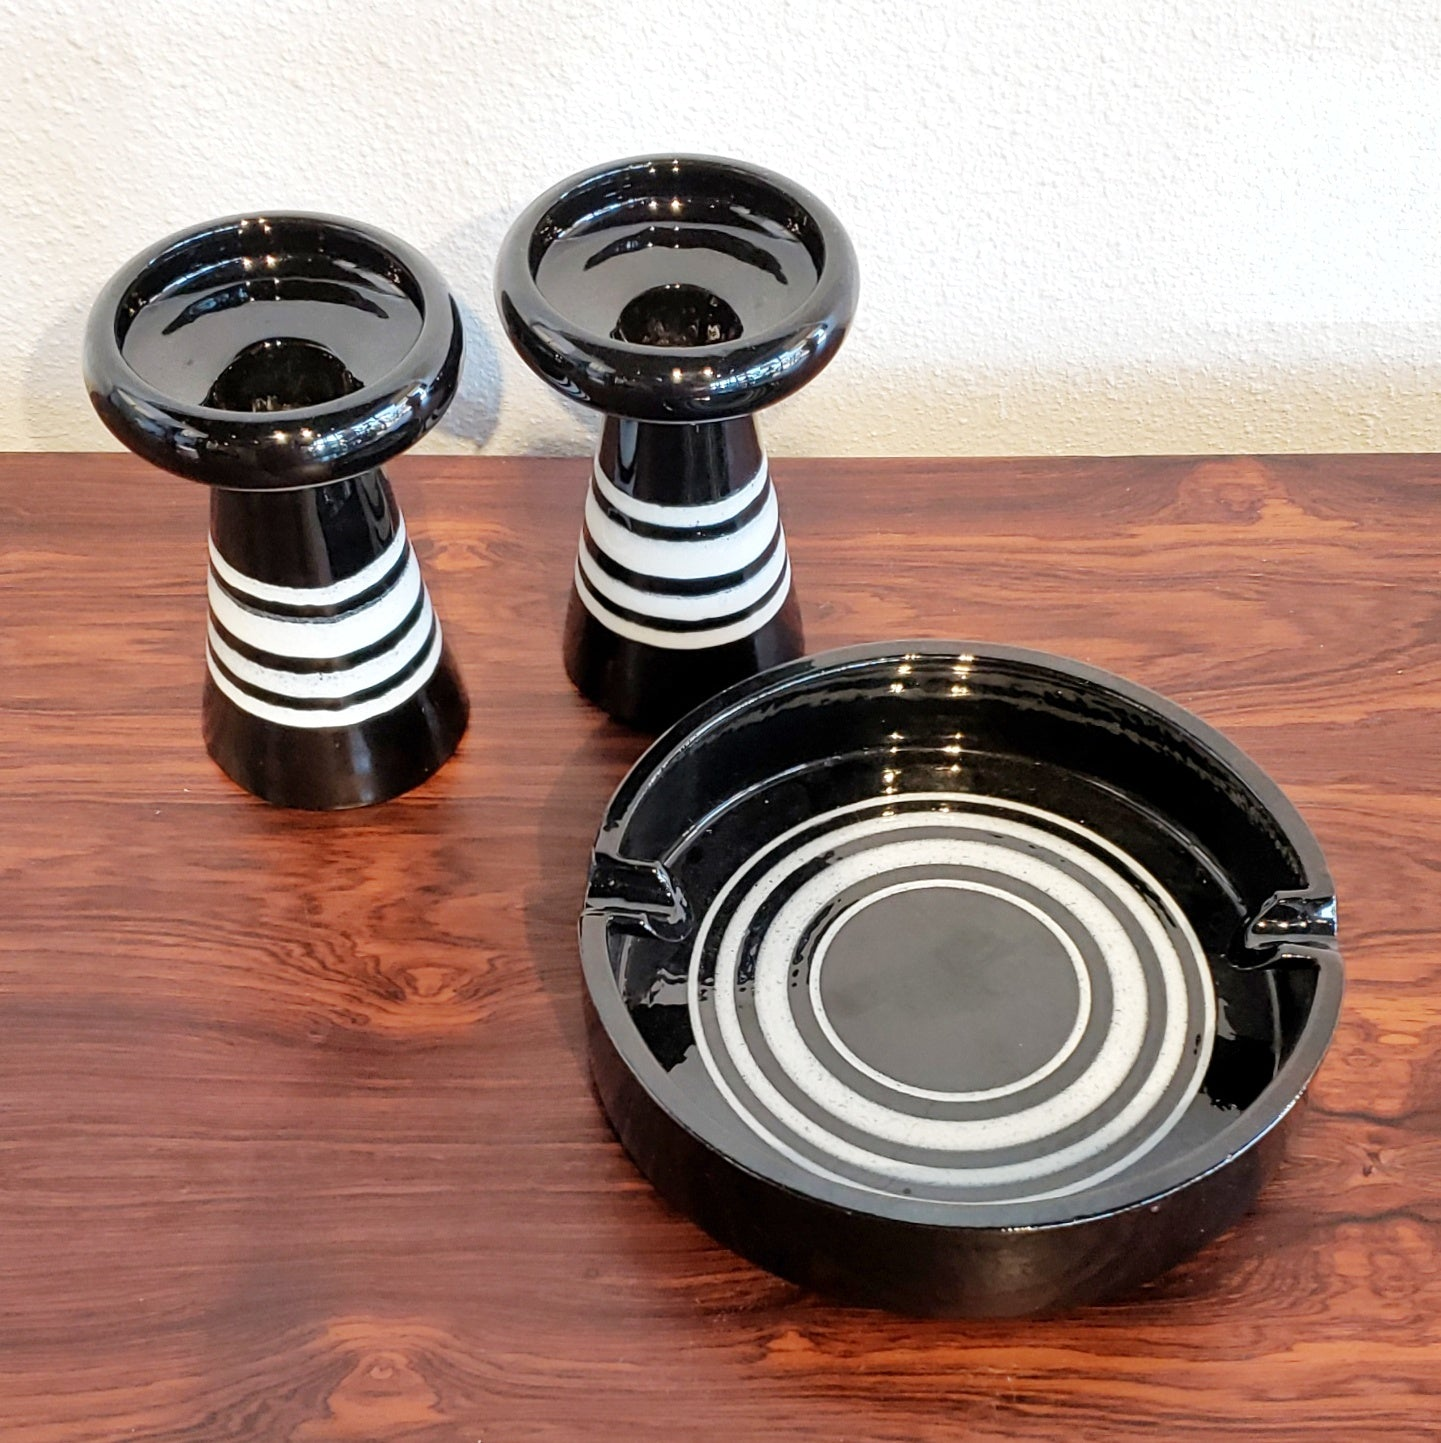 ALDO LONDI CANDLESTICKS AND ASHTRAY FOR BITOSSI CERAMICHE